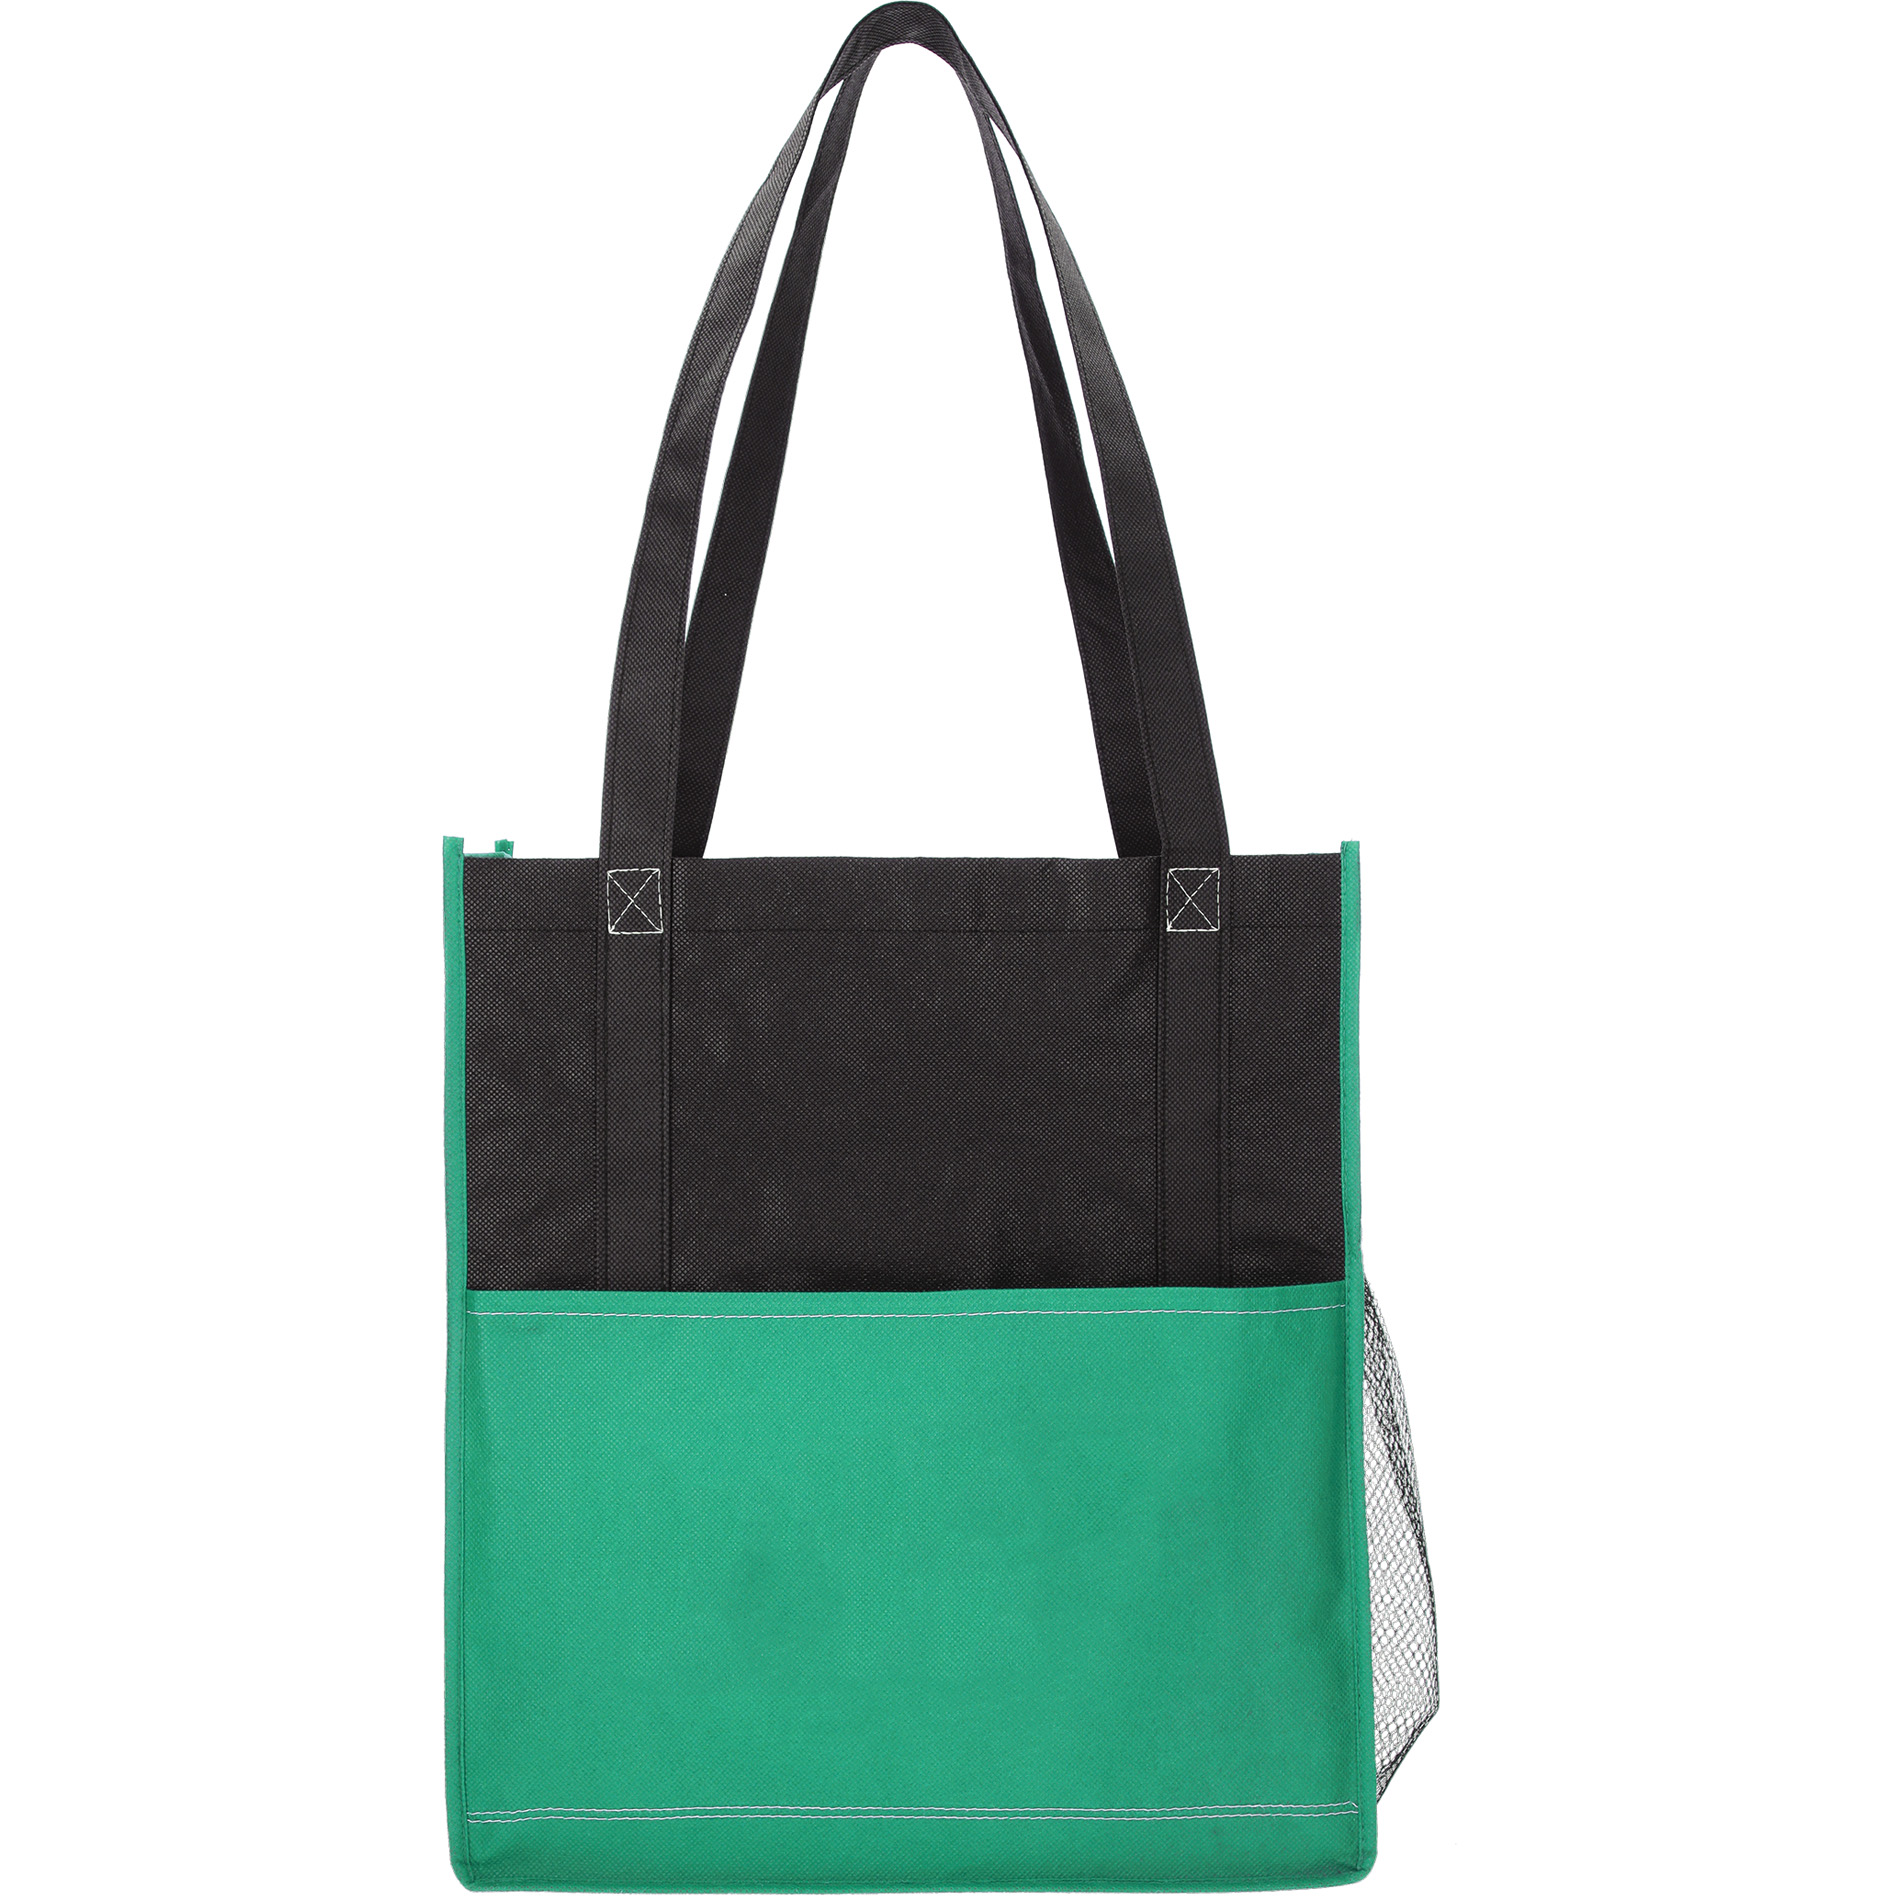 LEEDS SM-7042 - Deluxe Non-Woven Business Tote